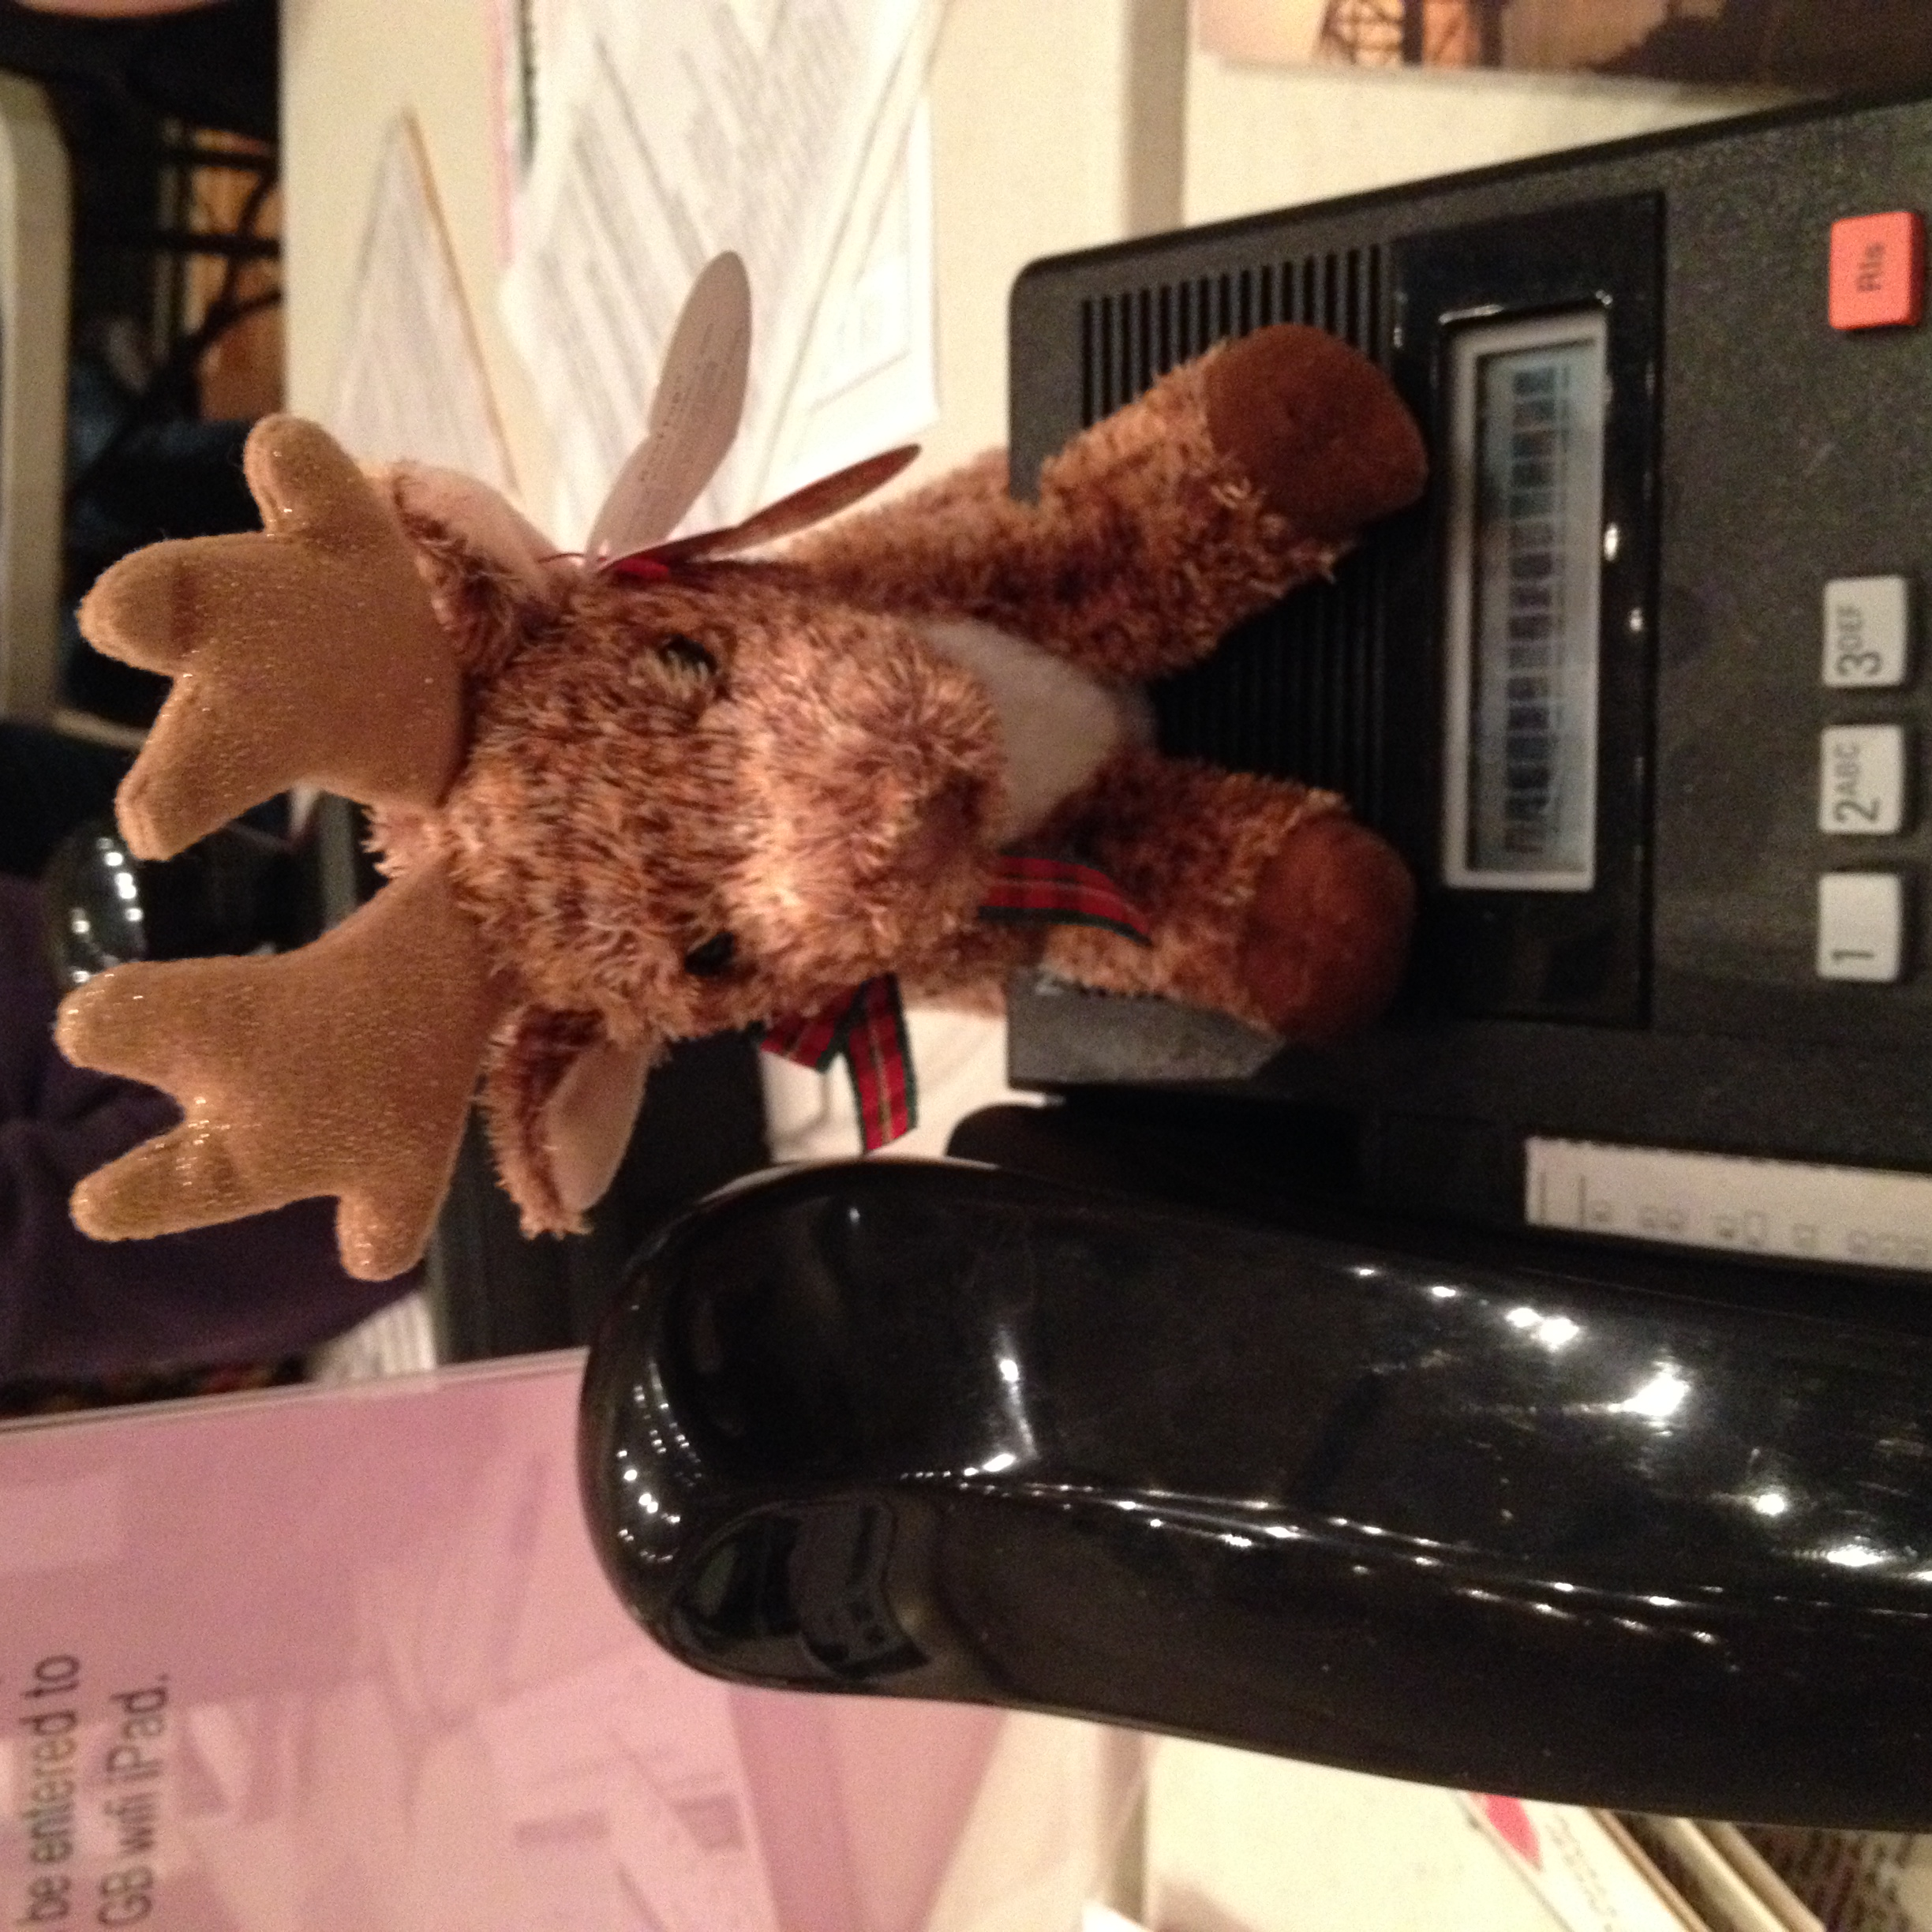 If you have the reindeer, you get the next pledge drive call. This used to be a penguin, but the penguin disappeared.